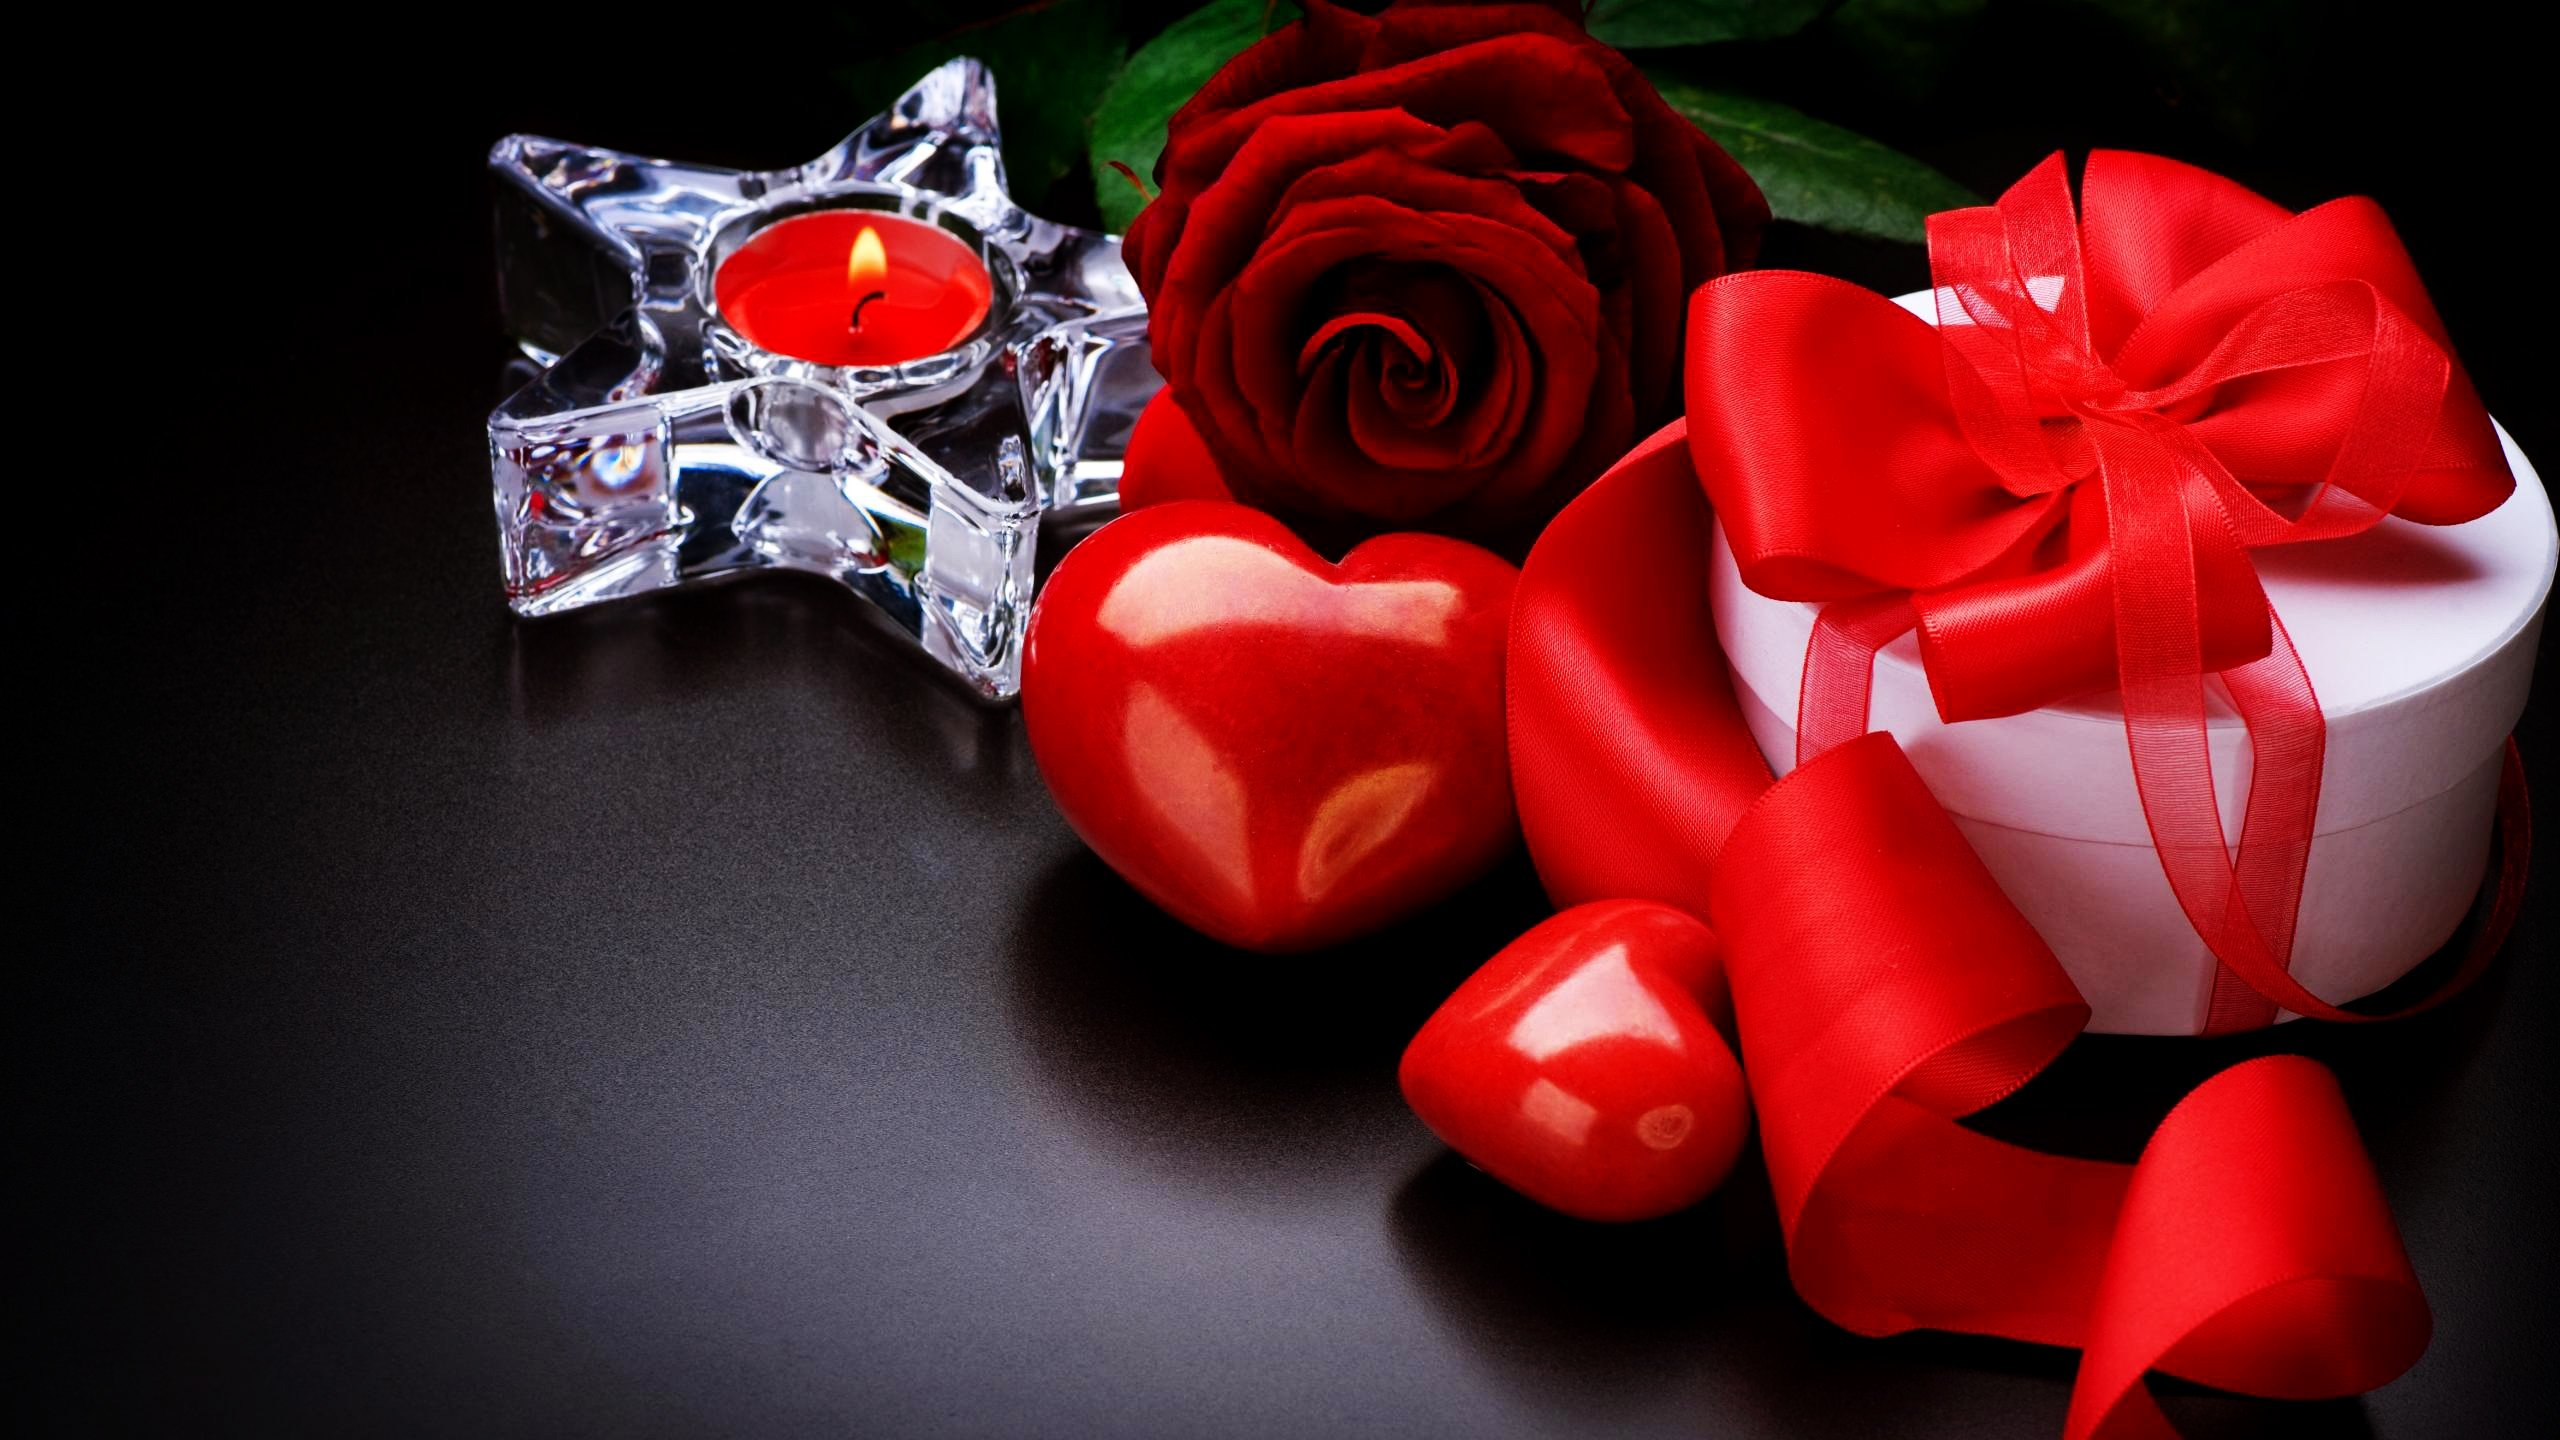 Awesome Valentine's Day free wallpaper ID:373247 for hd 2560x1440 desktop